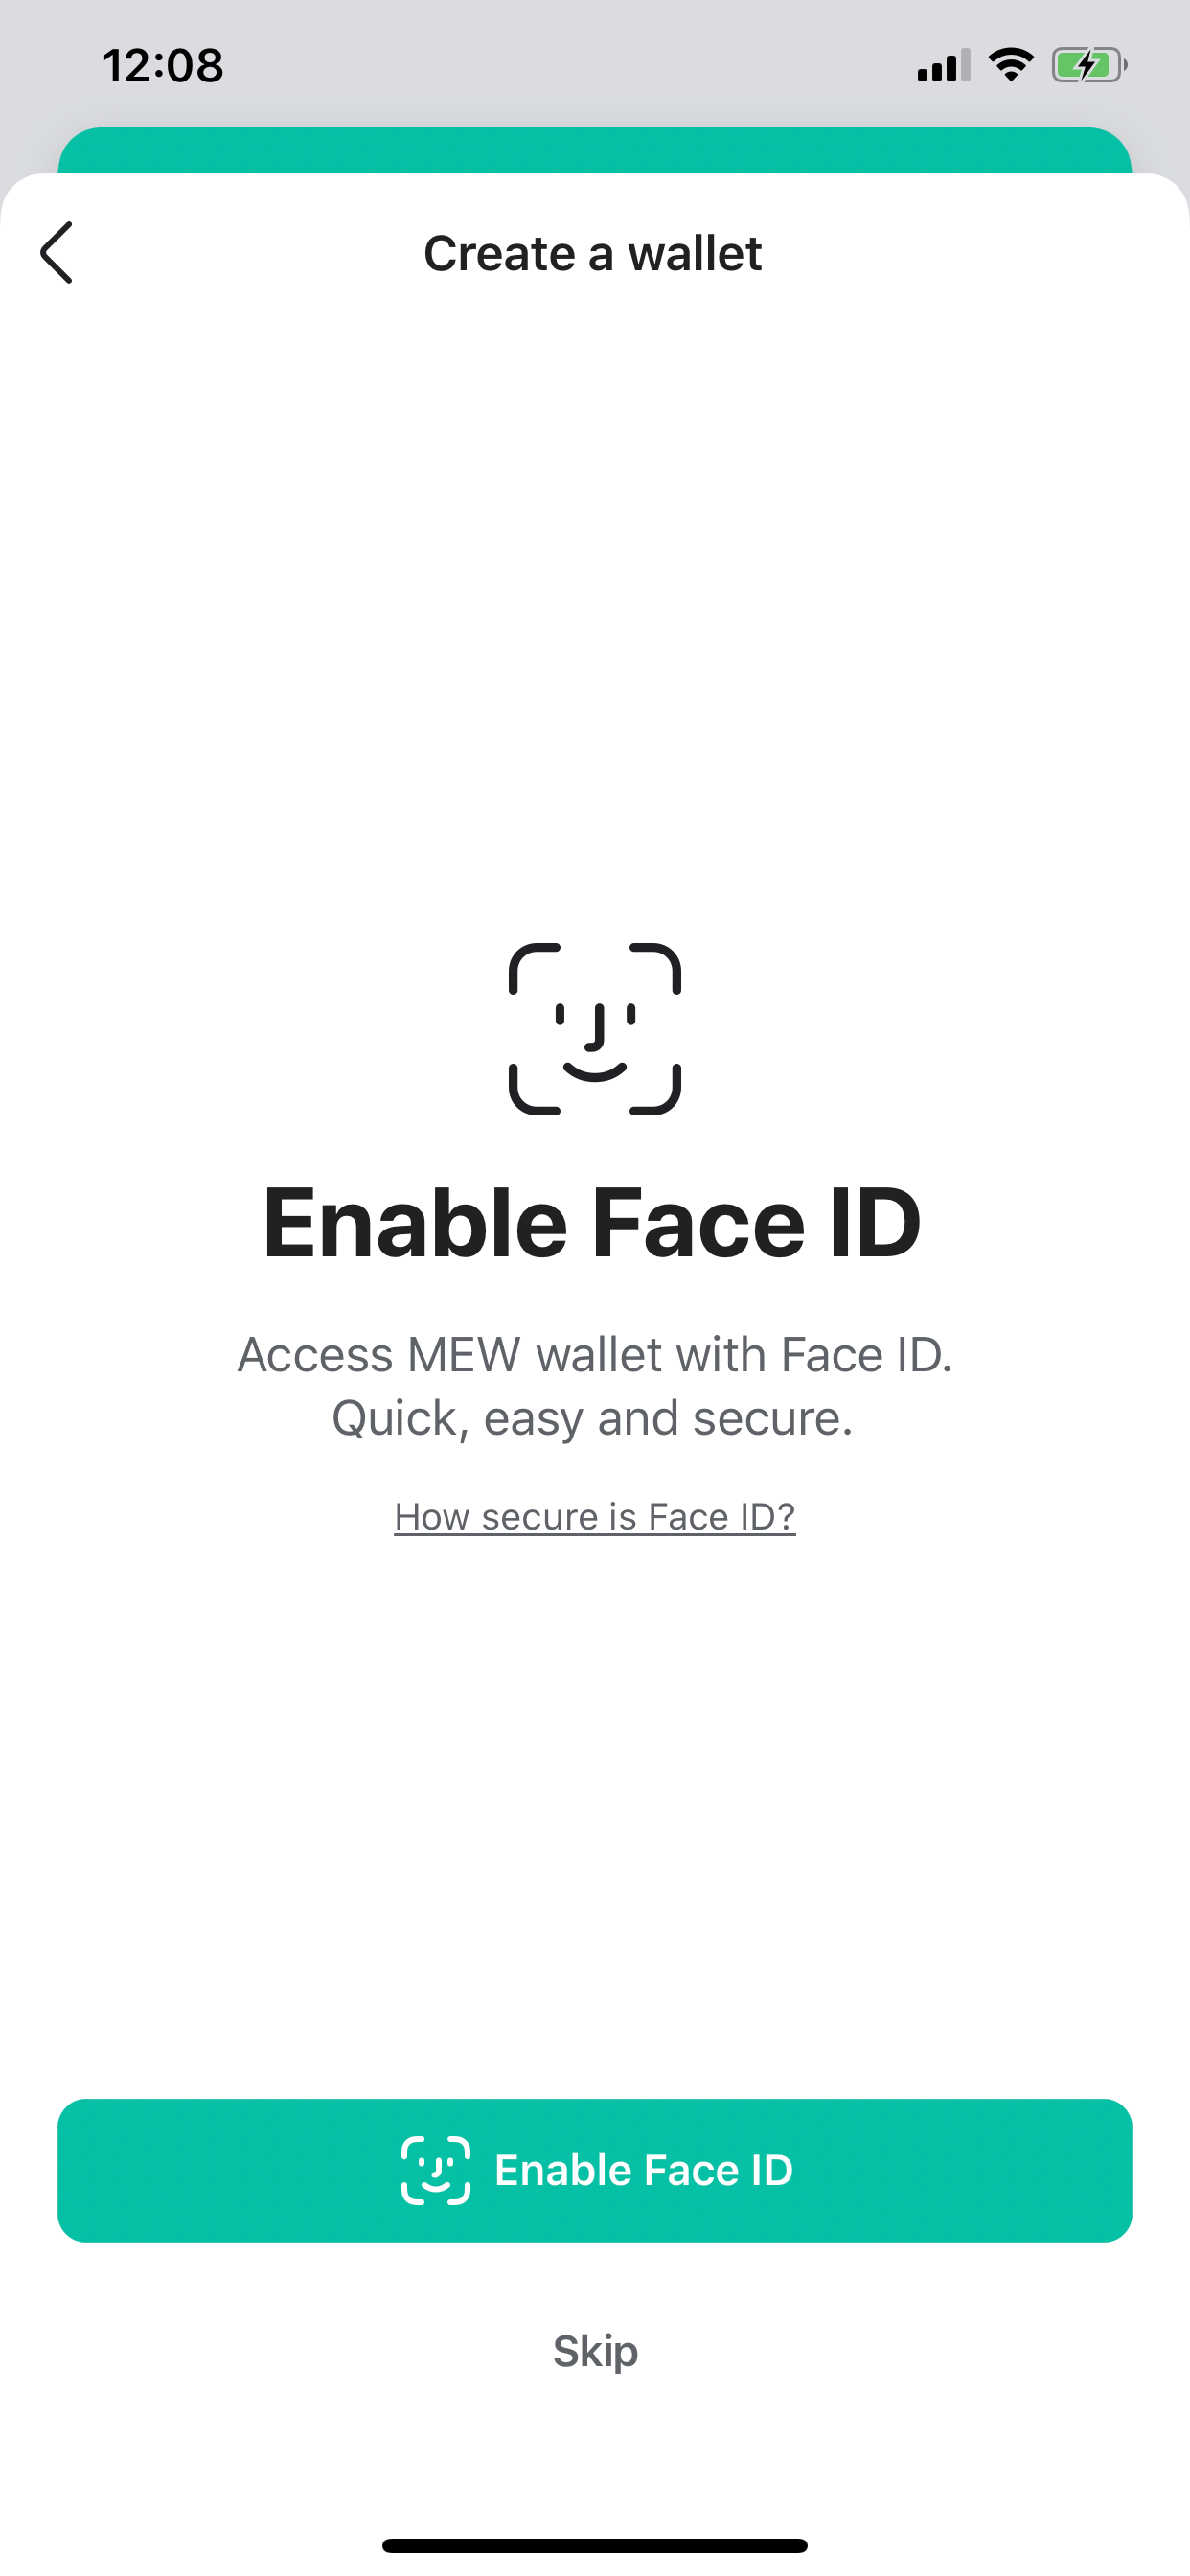 Image of MEW wallet face id